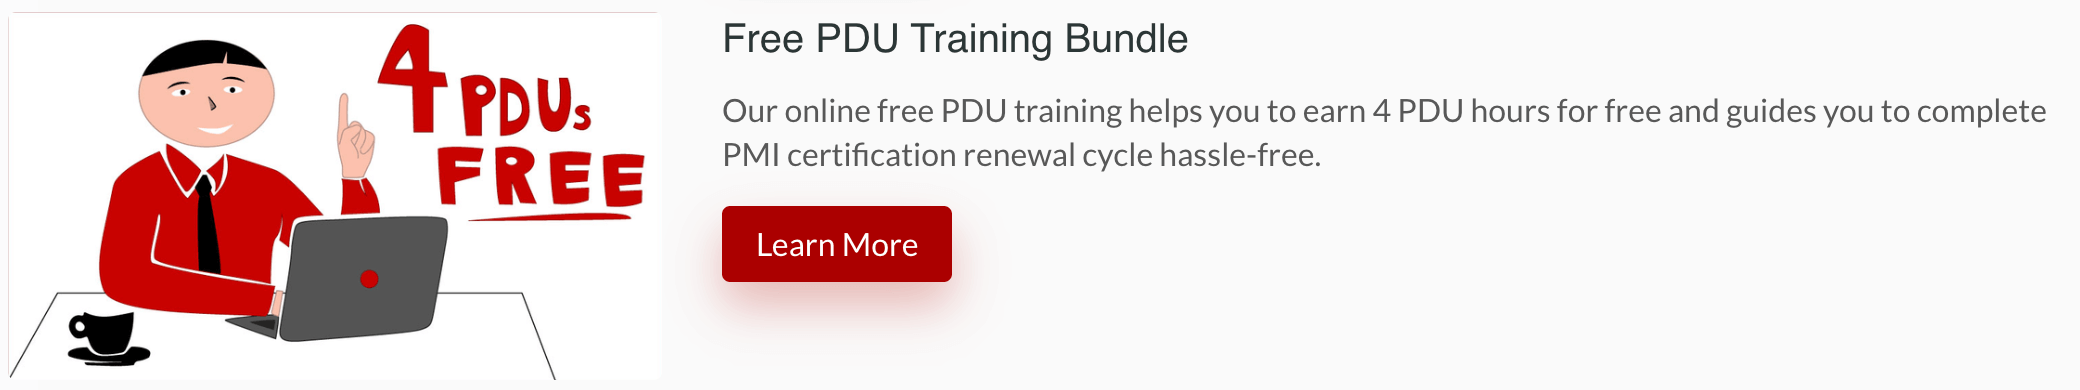 Free-PDU-Training PMP Certification Renewal | Easiest Path for PMP Renewal